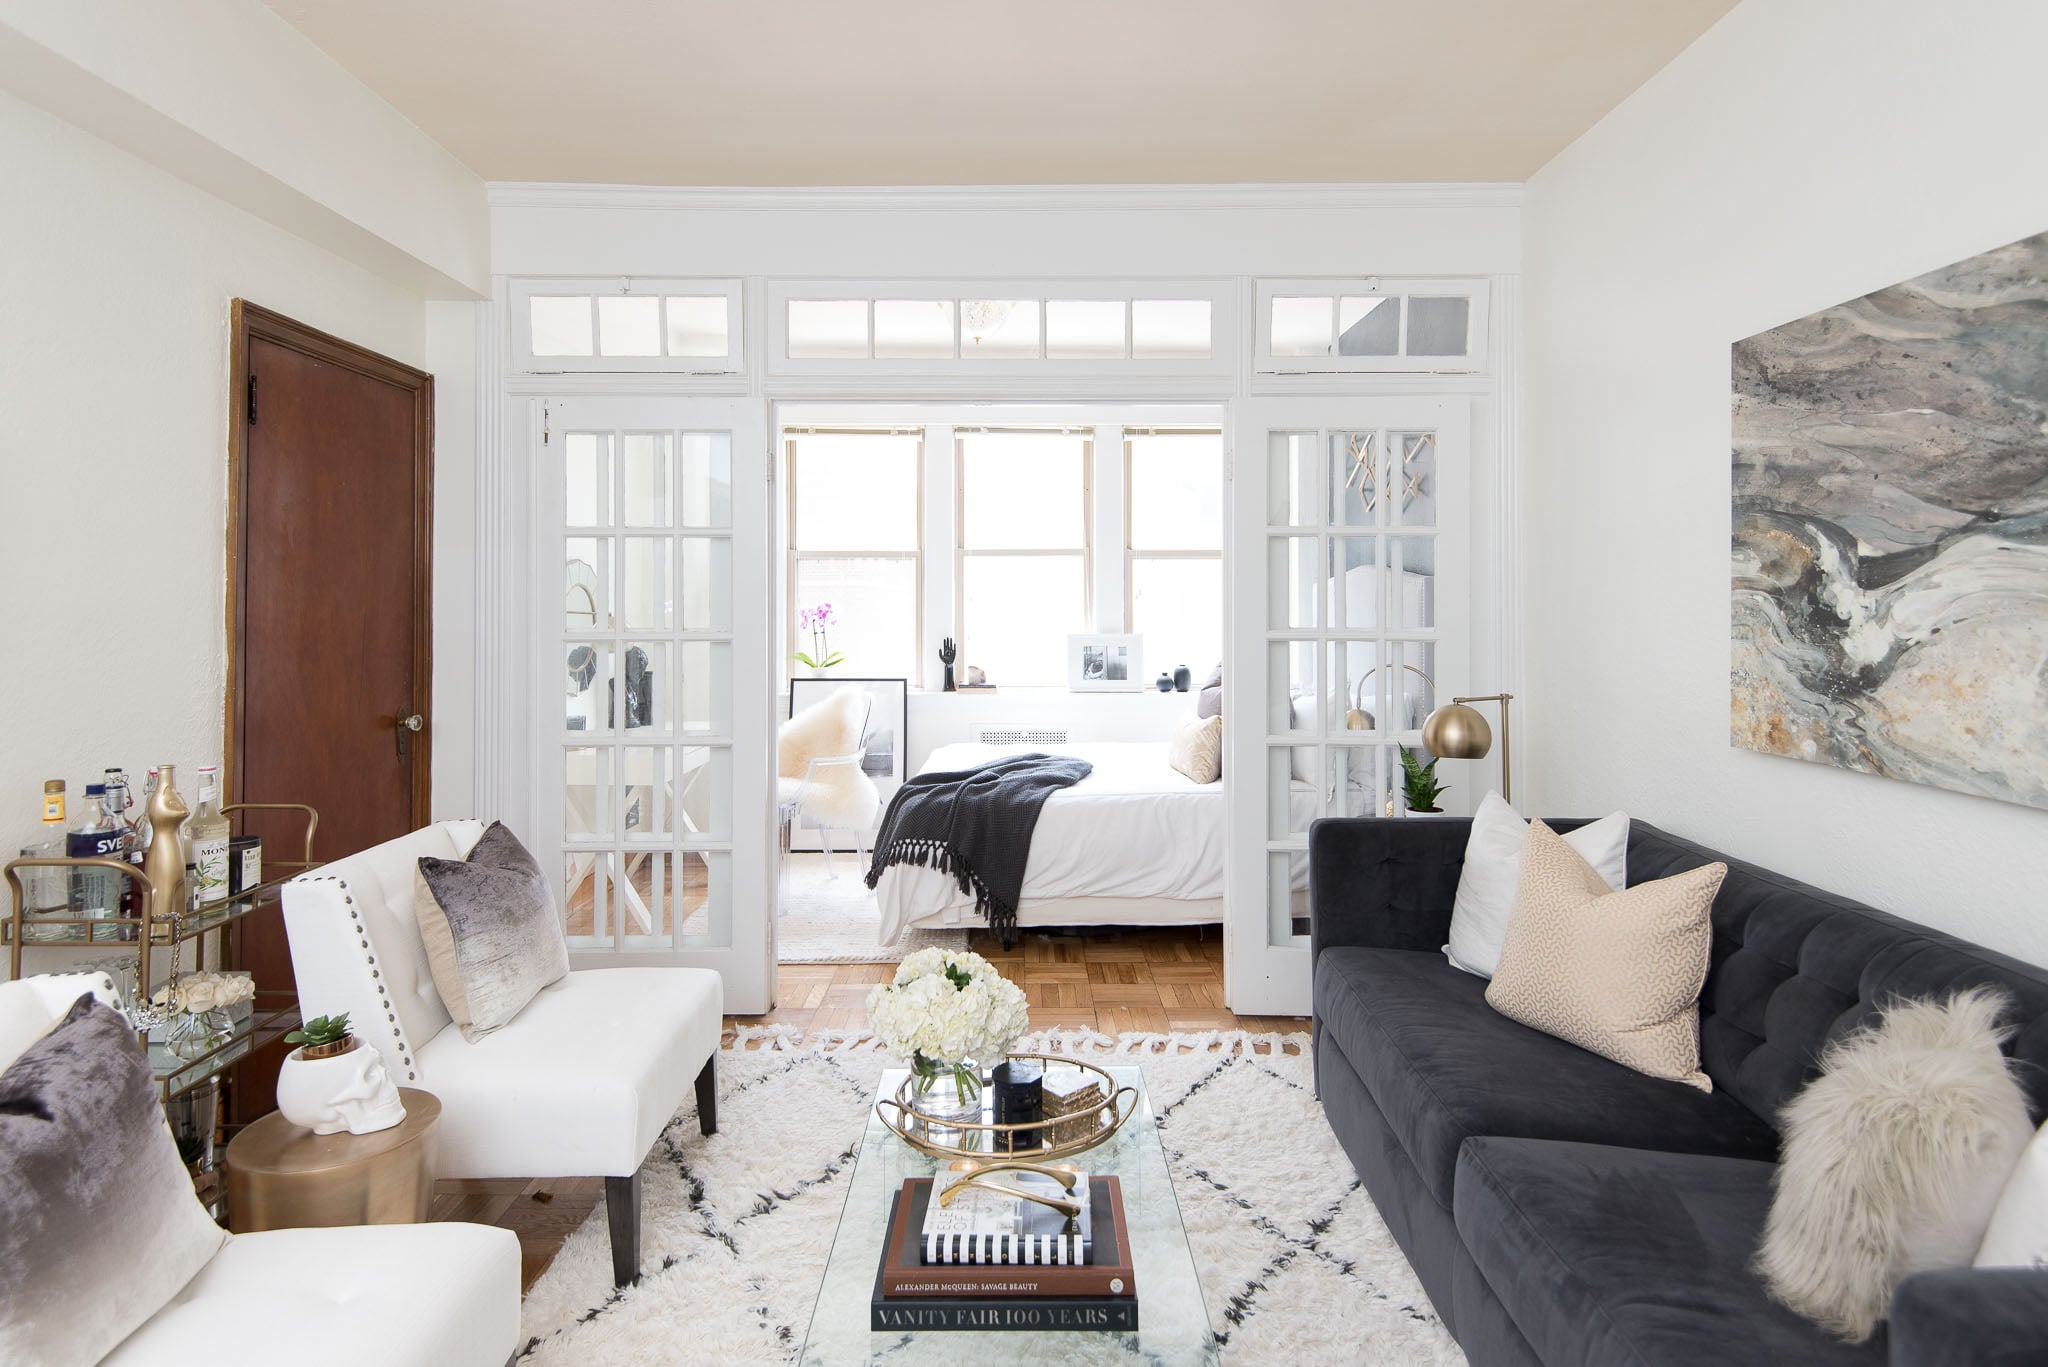 POPSUGAR: Where should someone start decorating when they move into a | How  to Decorate a Rental Apartment From Scratch on a Budget | POPSUGAR Home  Photo 2